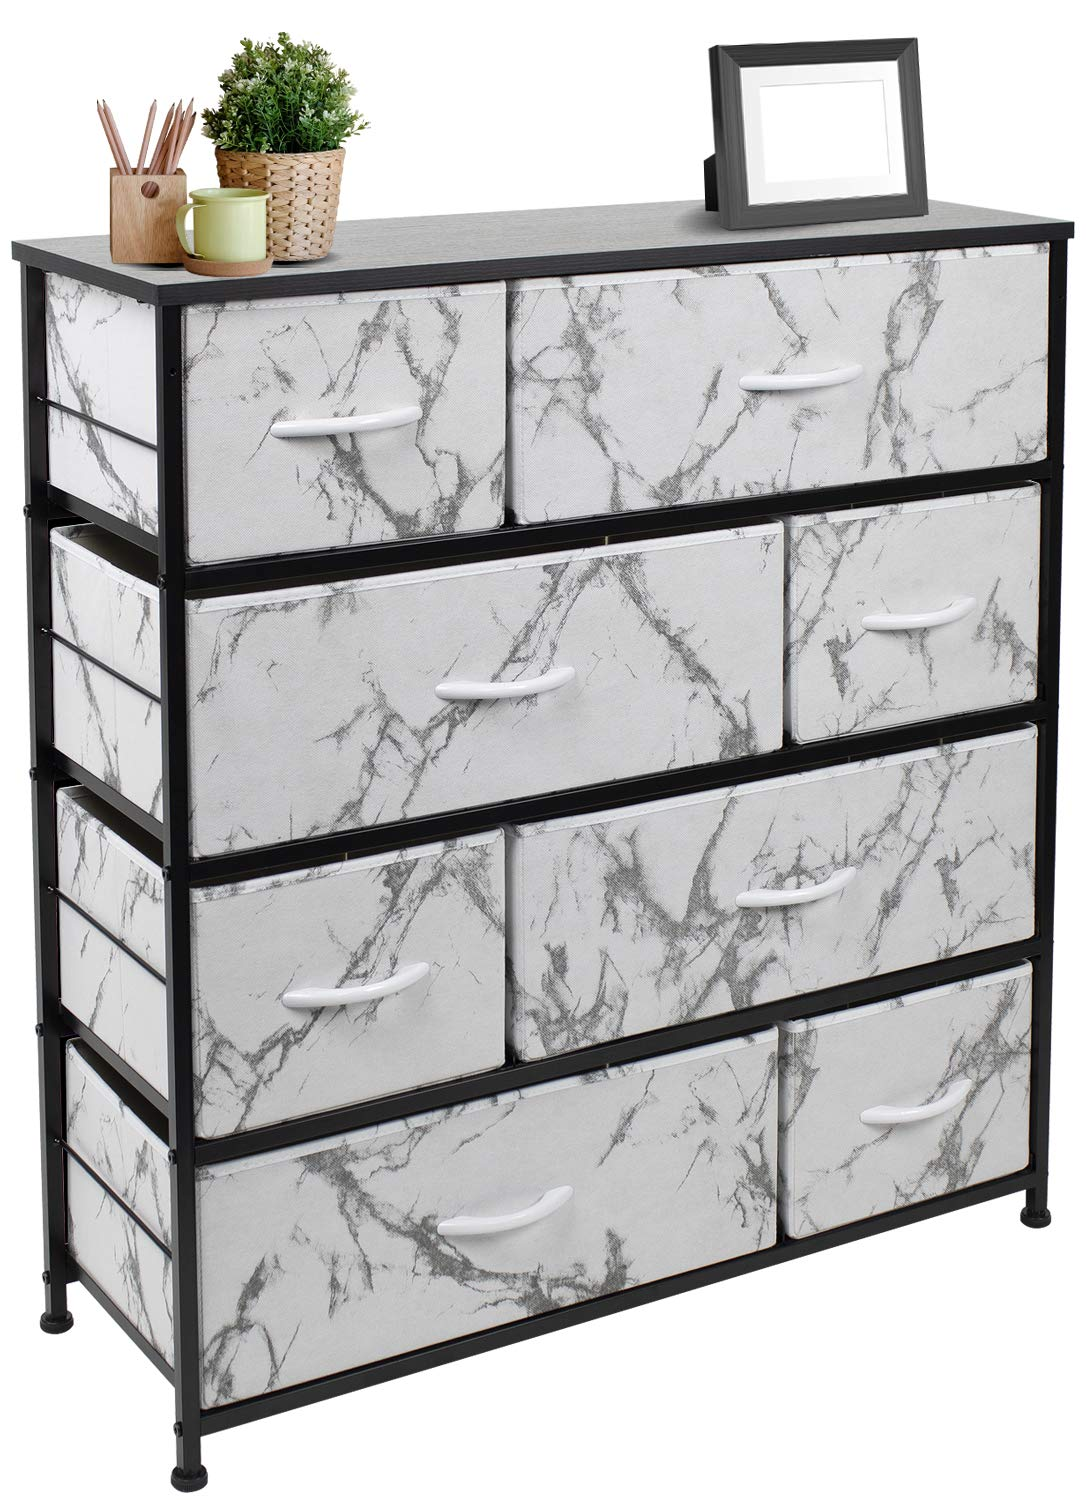 Sorbus Dresser with 8 Drawers - Furniture Storage Chest Tower Unit for Bedroom, Hallway, Closet, Office Organization - Steel Frame, Wood Top, Easy Pull Fabric Bins (Marble White – Black Frame)